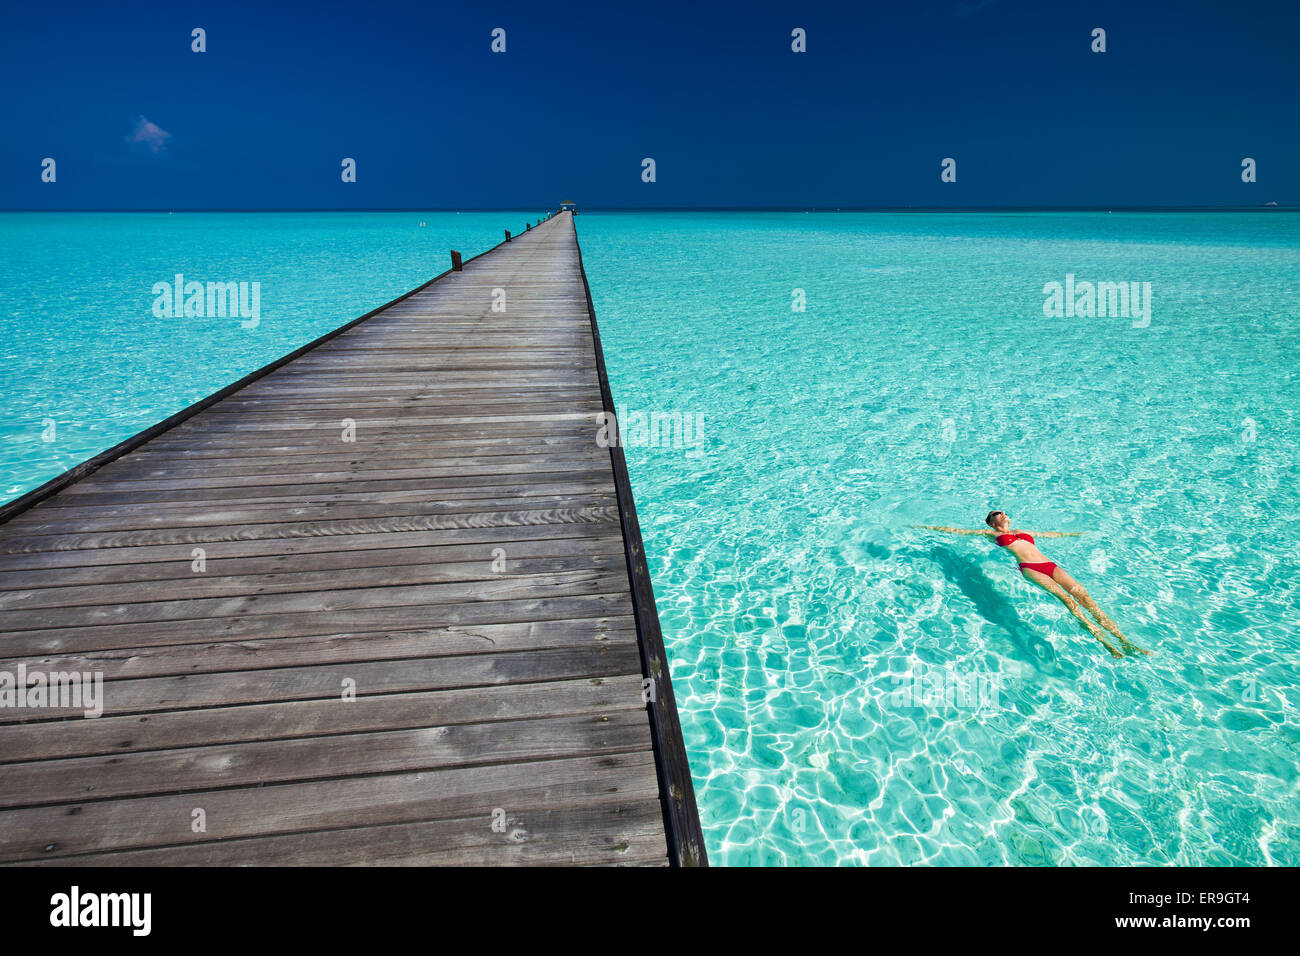 Young woman in red bikini swimming next to jetty in azure water of Maldives - Stock Image